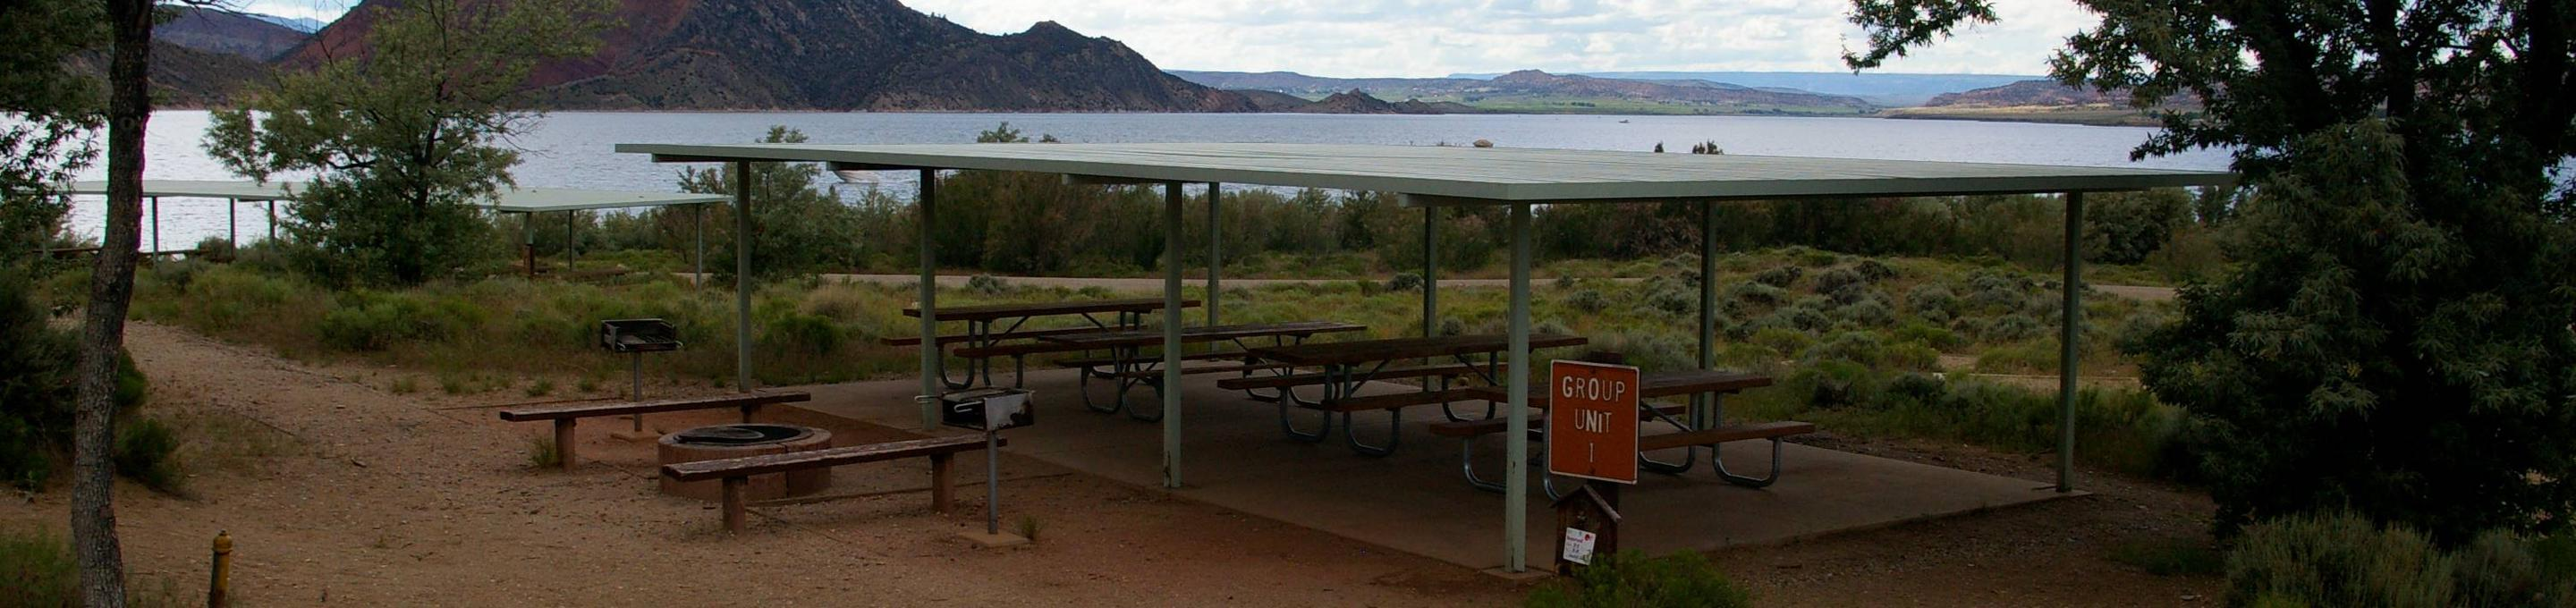 Pavillion that covers a number of picnic tables and a fire pit with some seating around it sets off to the side. The lake can be seen in the background.Antelope Flat Campground - Group Site 1